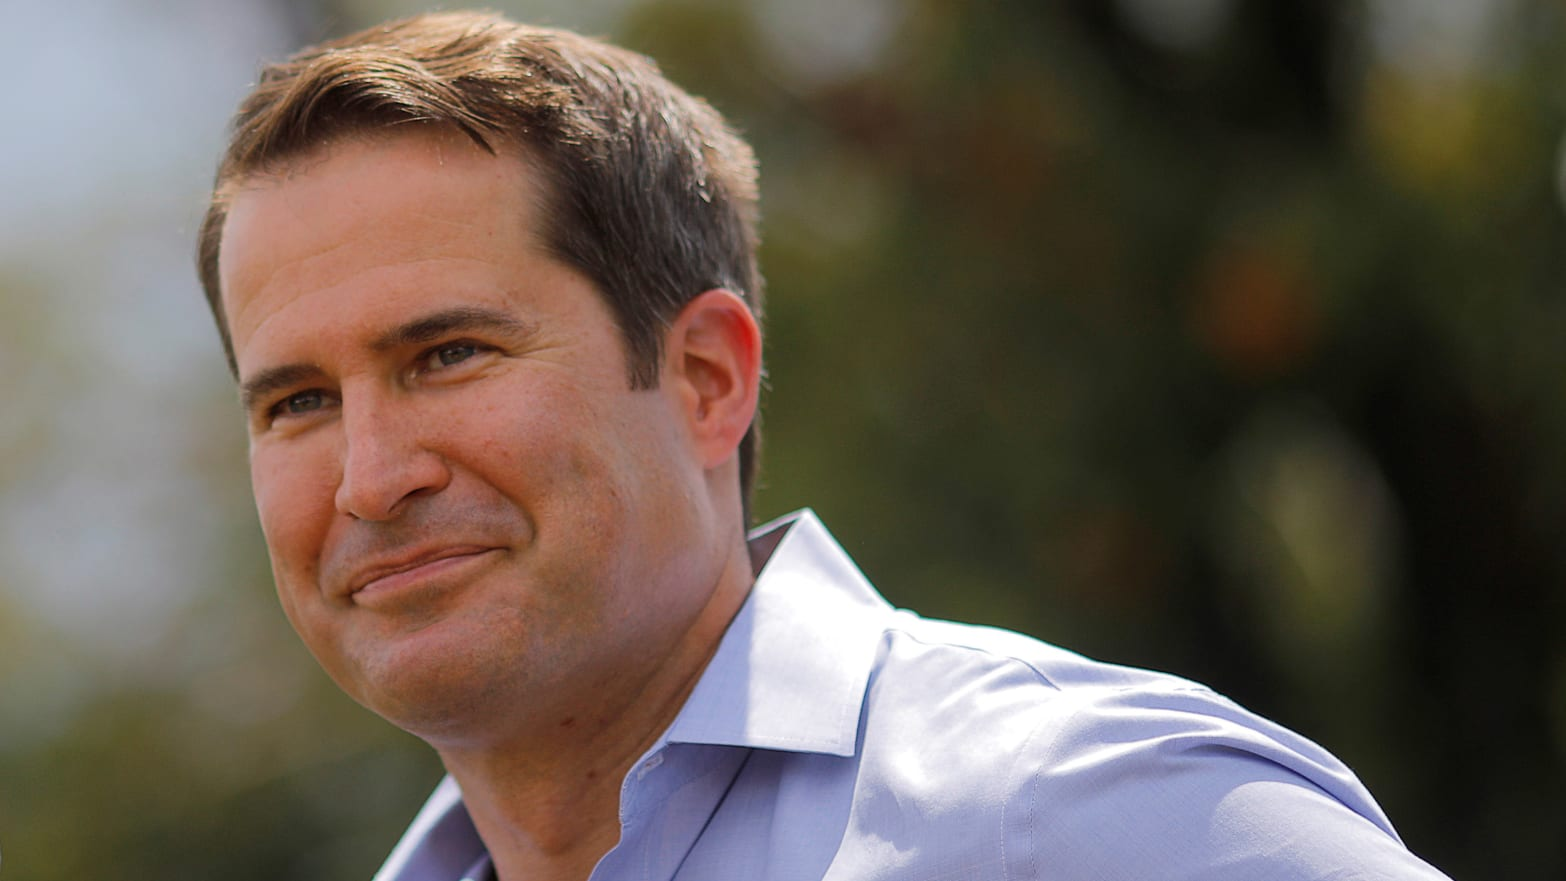 Seth Moulton, the 20th Declared Democratic Candidate, Enters 2020 Race